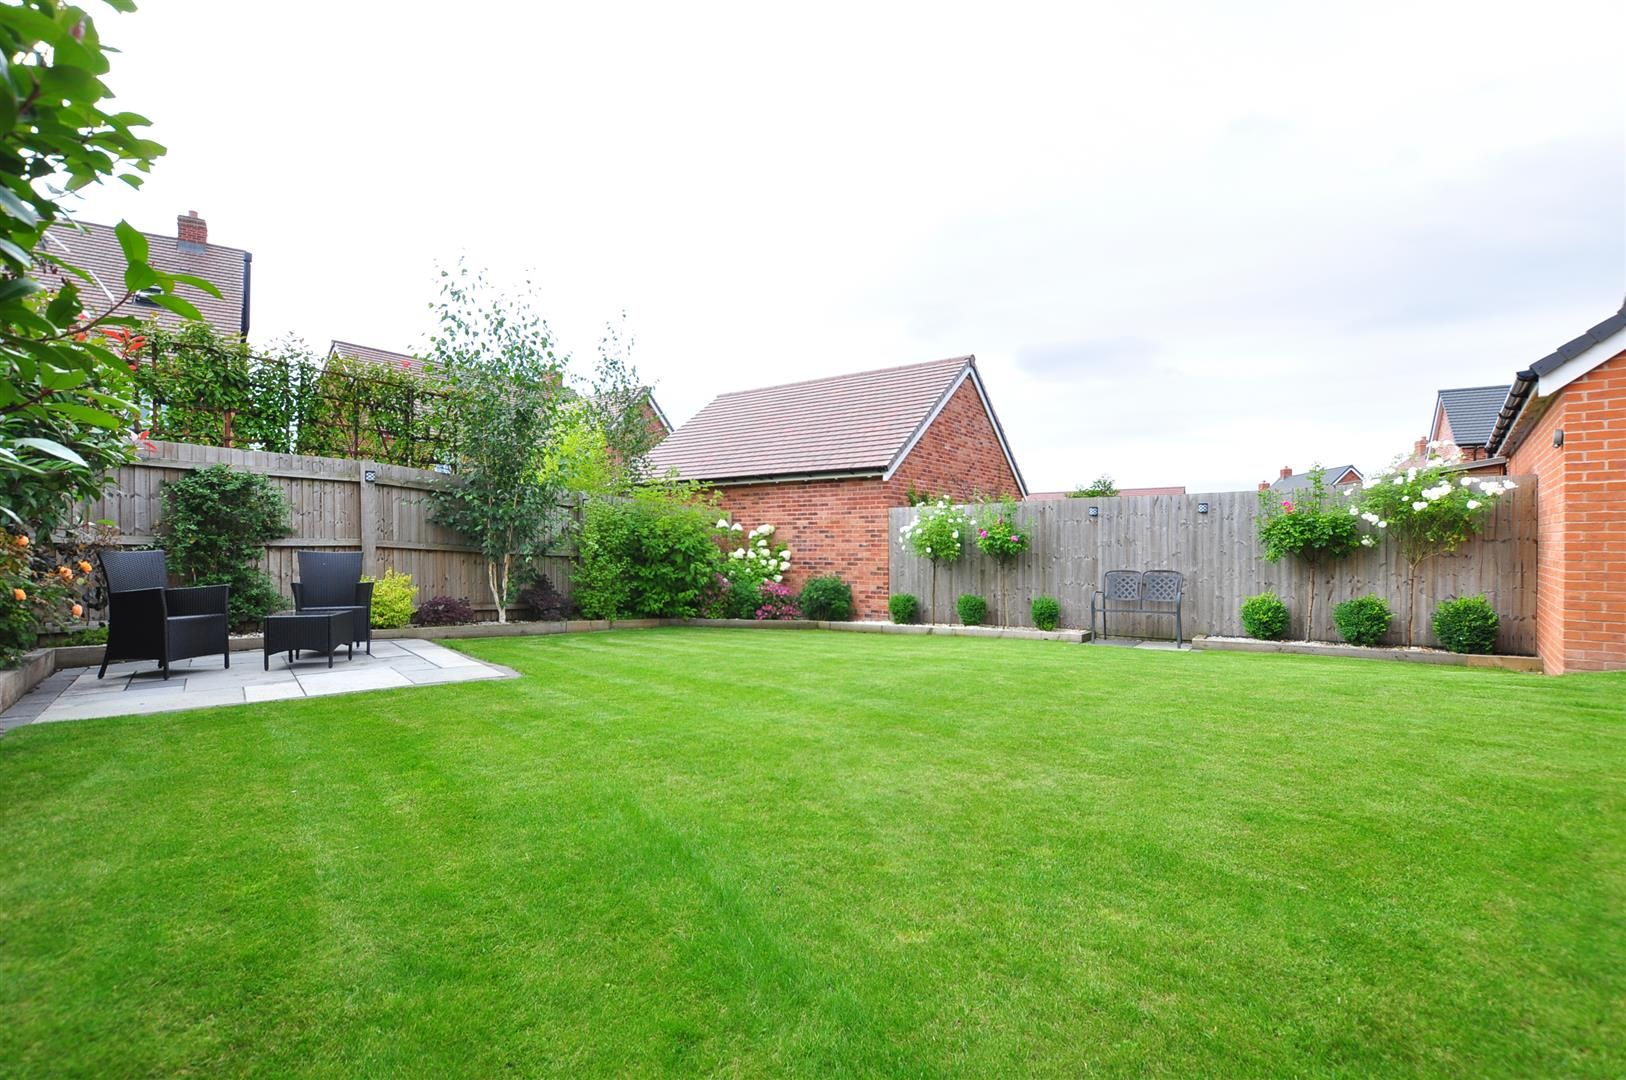 4 bed detached for sale in Hagley 22